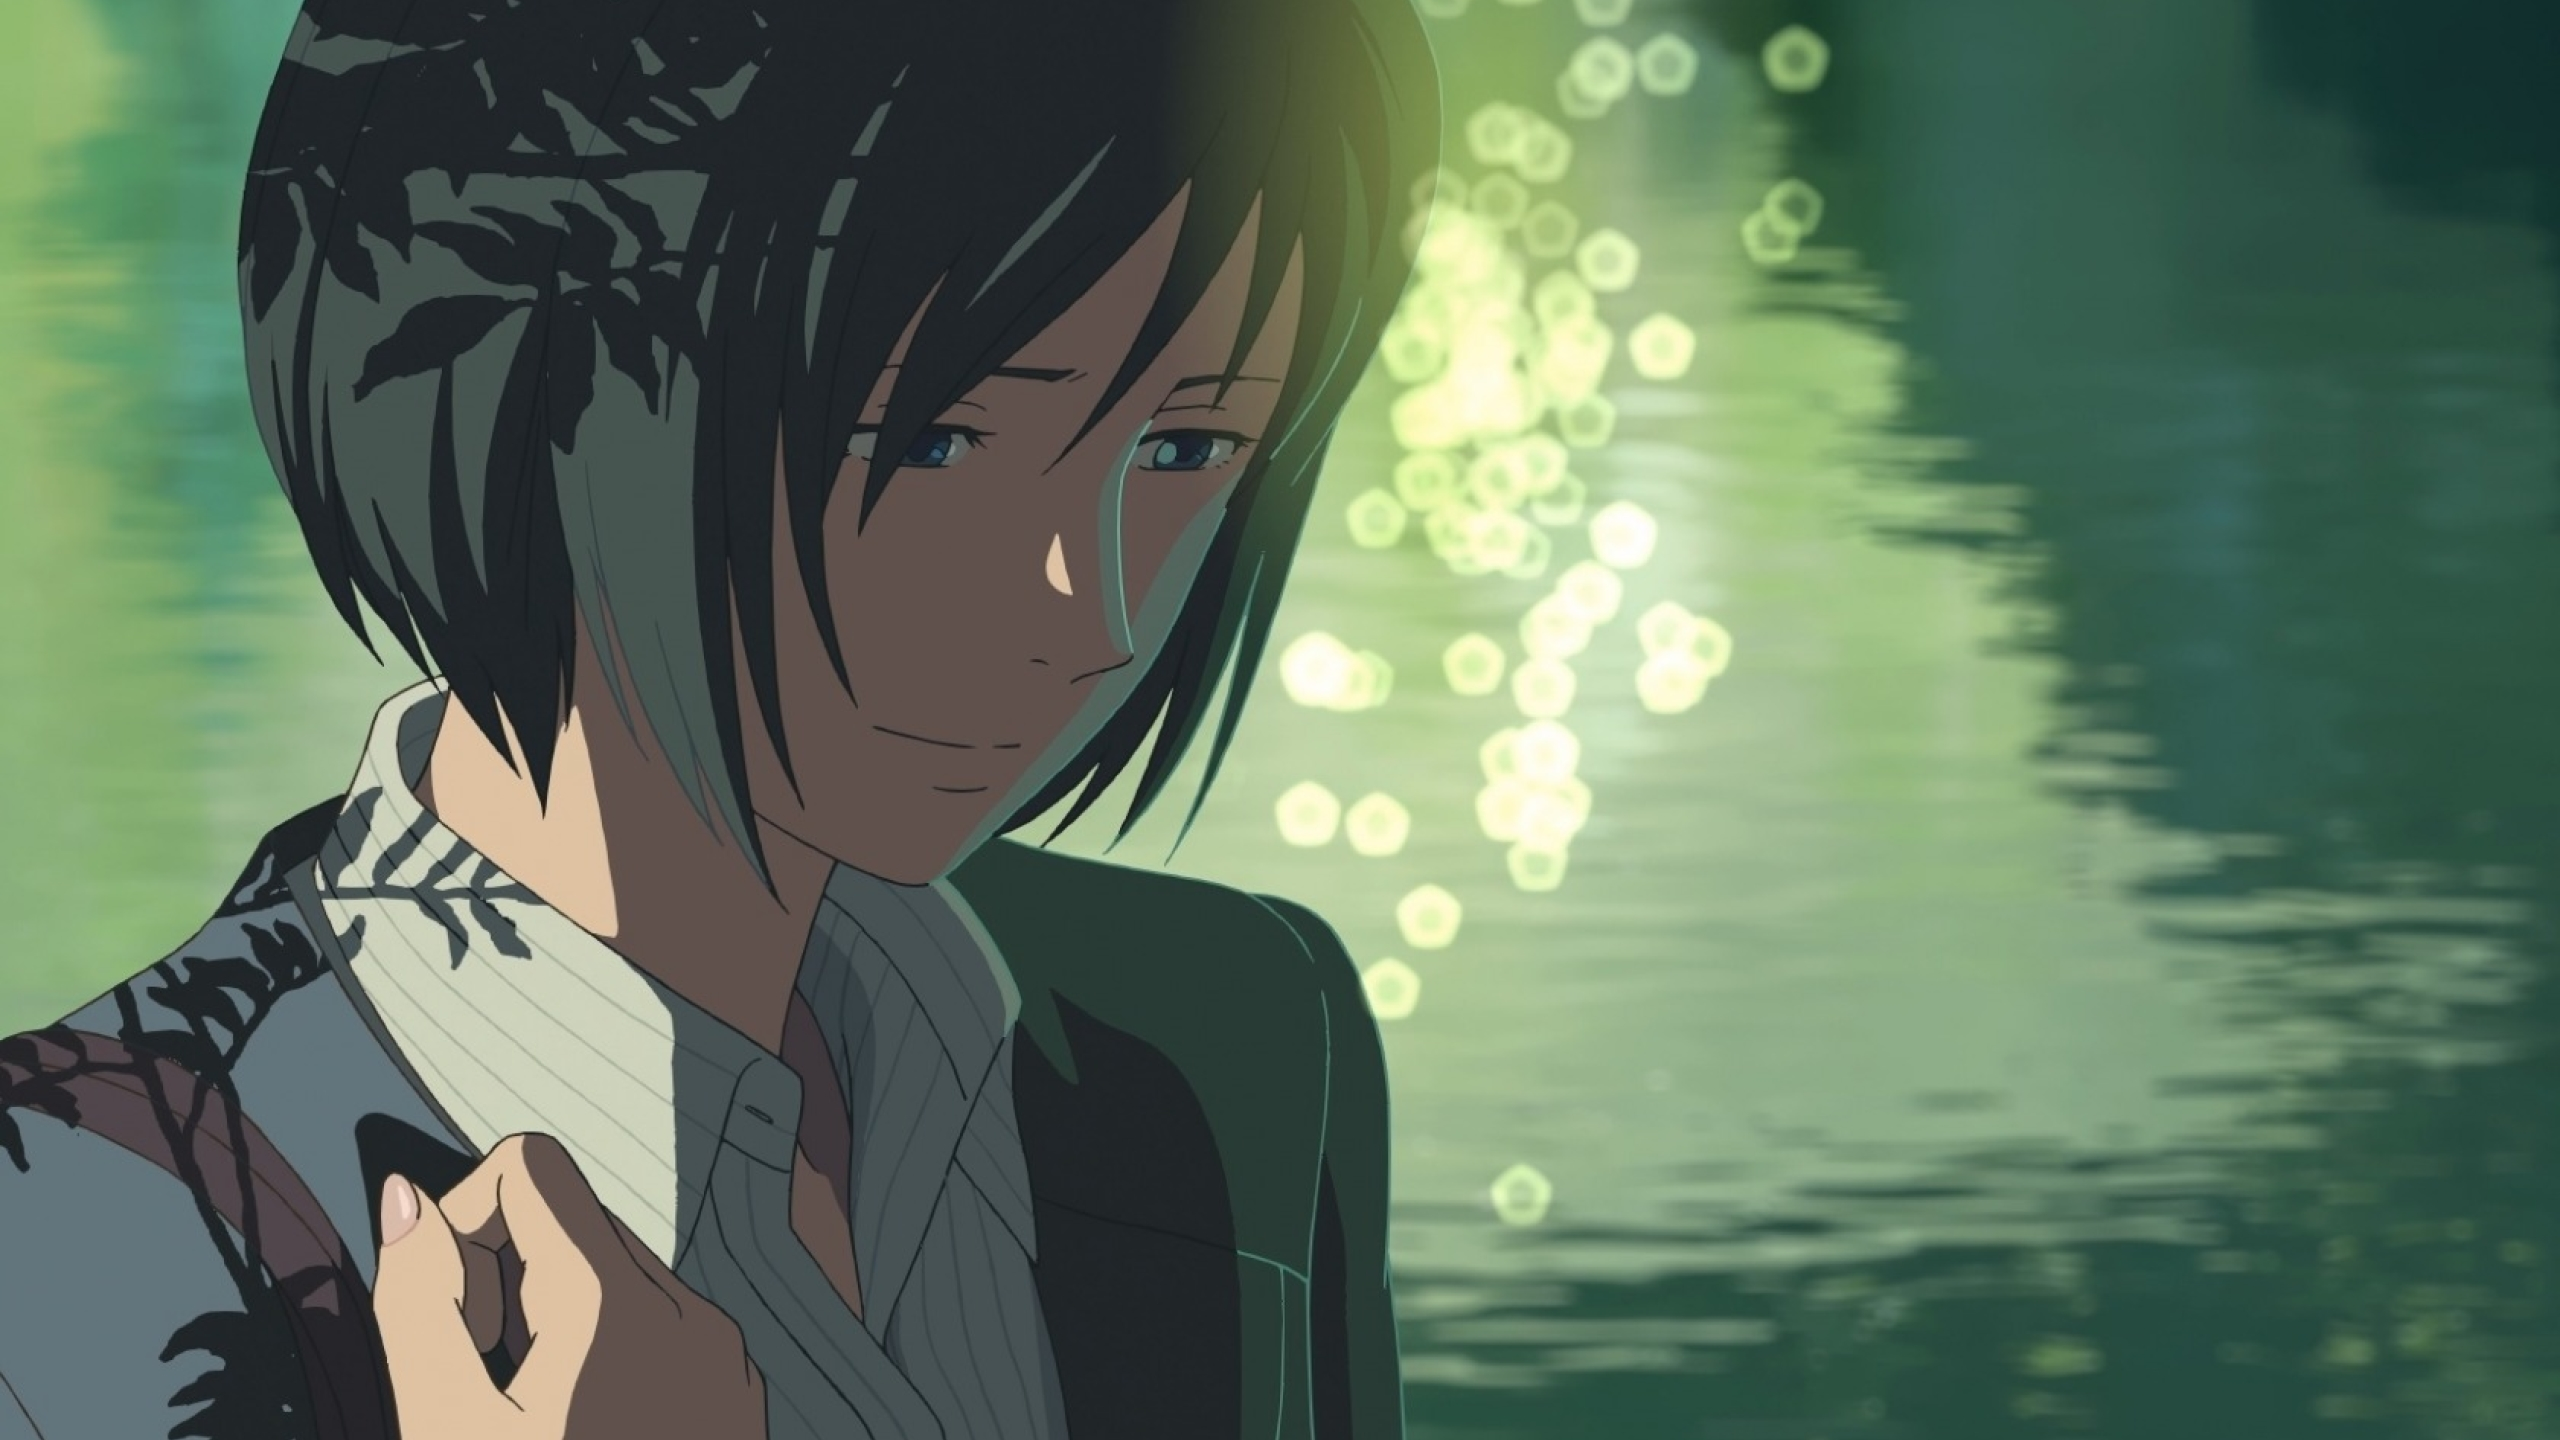 2560x1440 Kotonoha No Niwa The Garden Of Words Makoto Shinkai